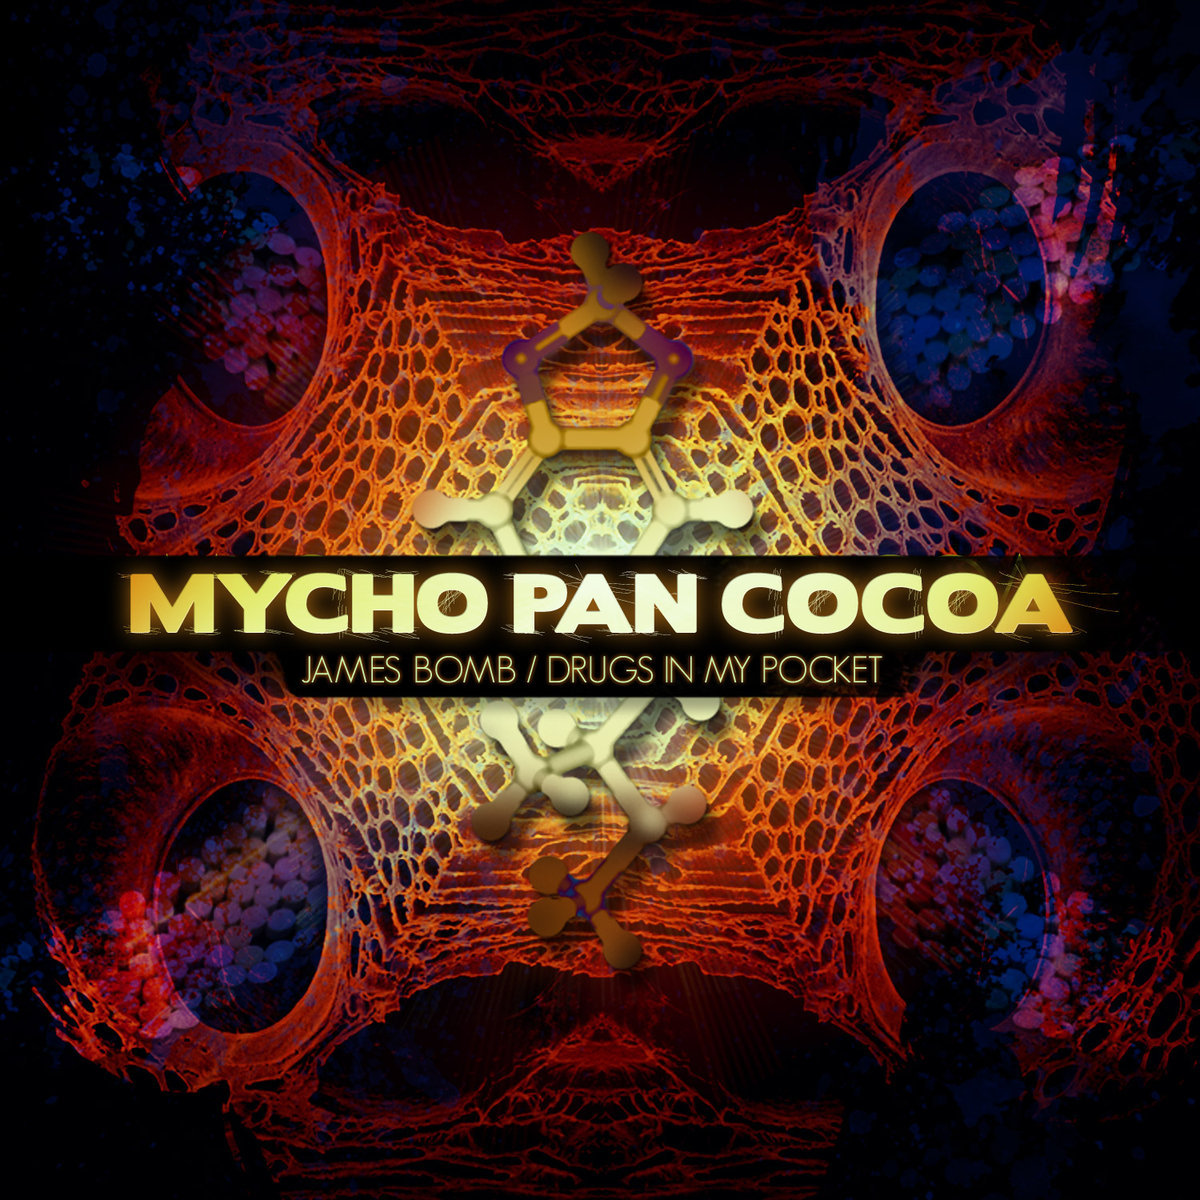 Mycho Pan Cocoa - Drugs in my Pocket